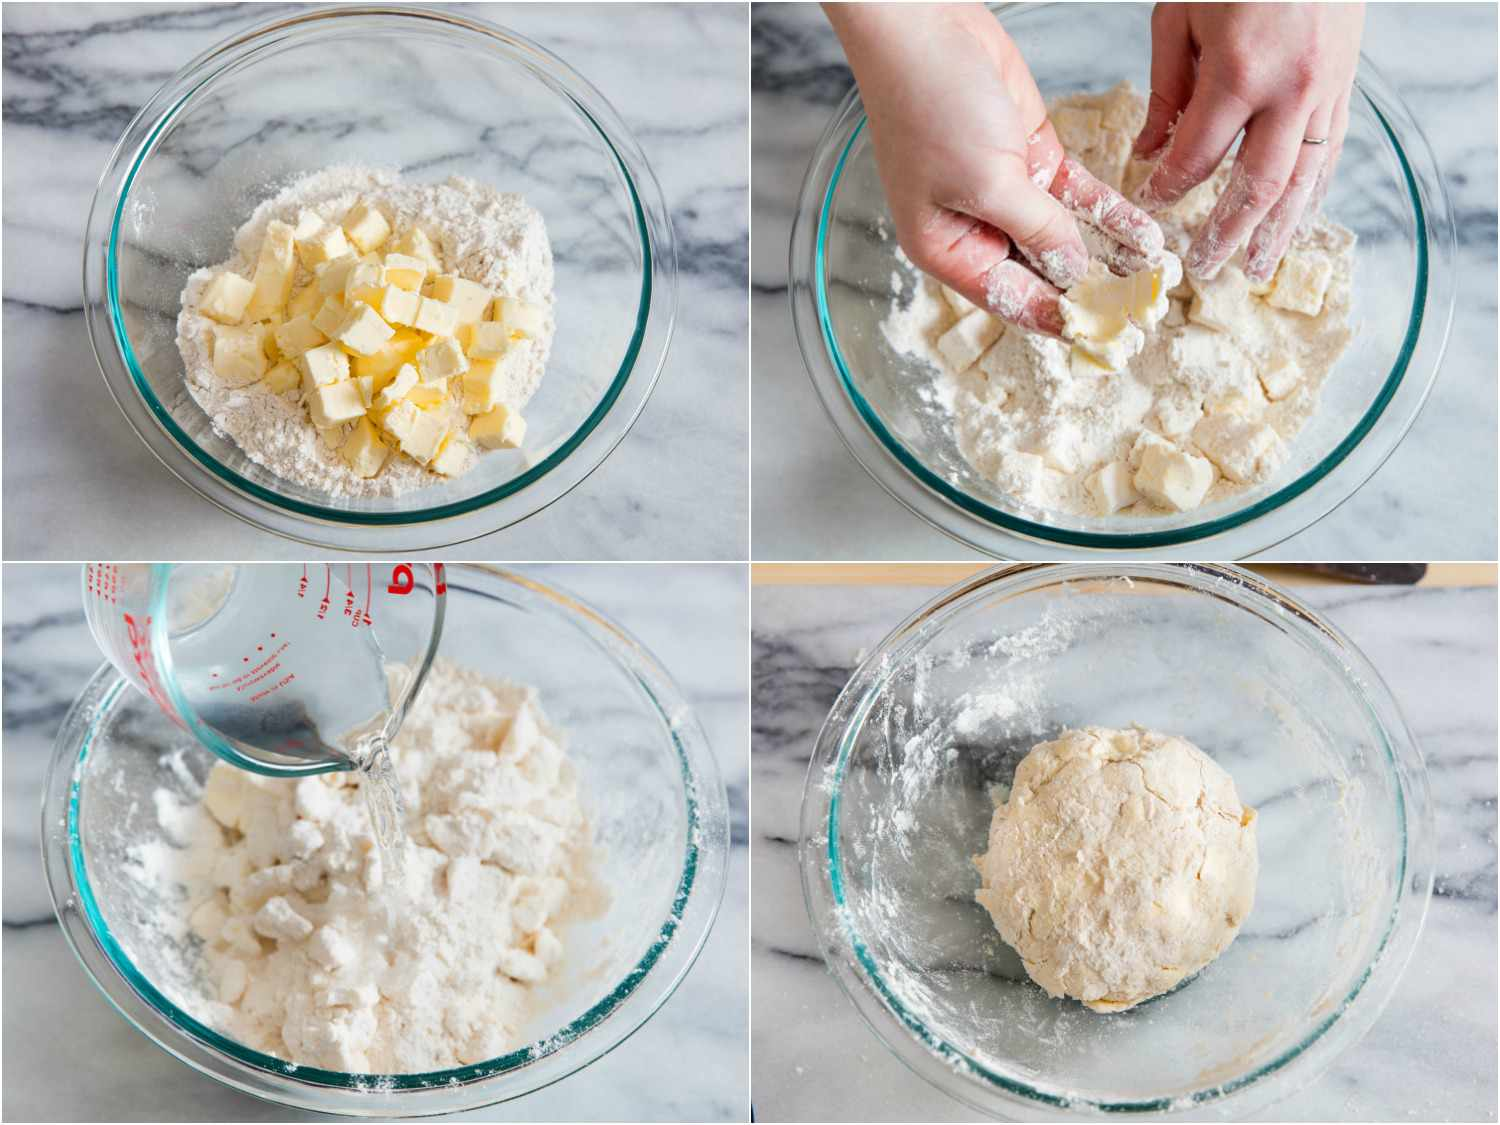 Collage of making dough for pie crust: adding cubes of butter to dry mixture, tossing butter with flour and smashing flat, adding water, ball of finished dough